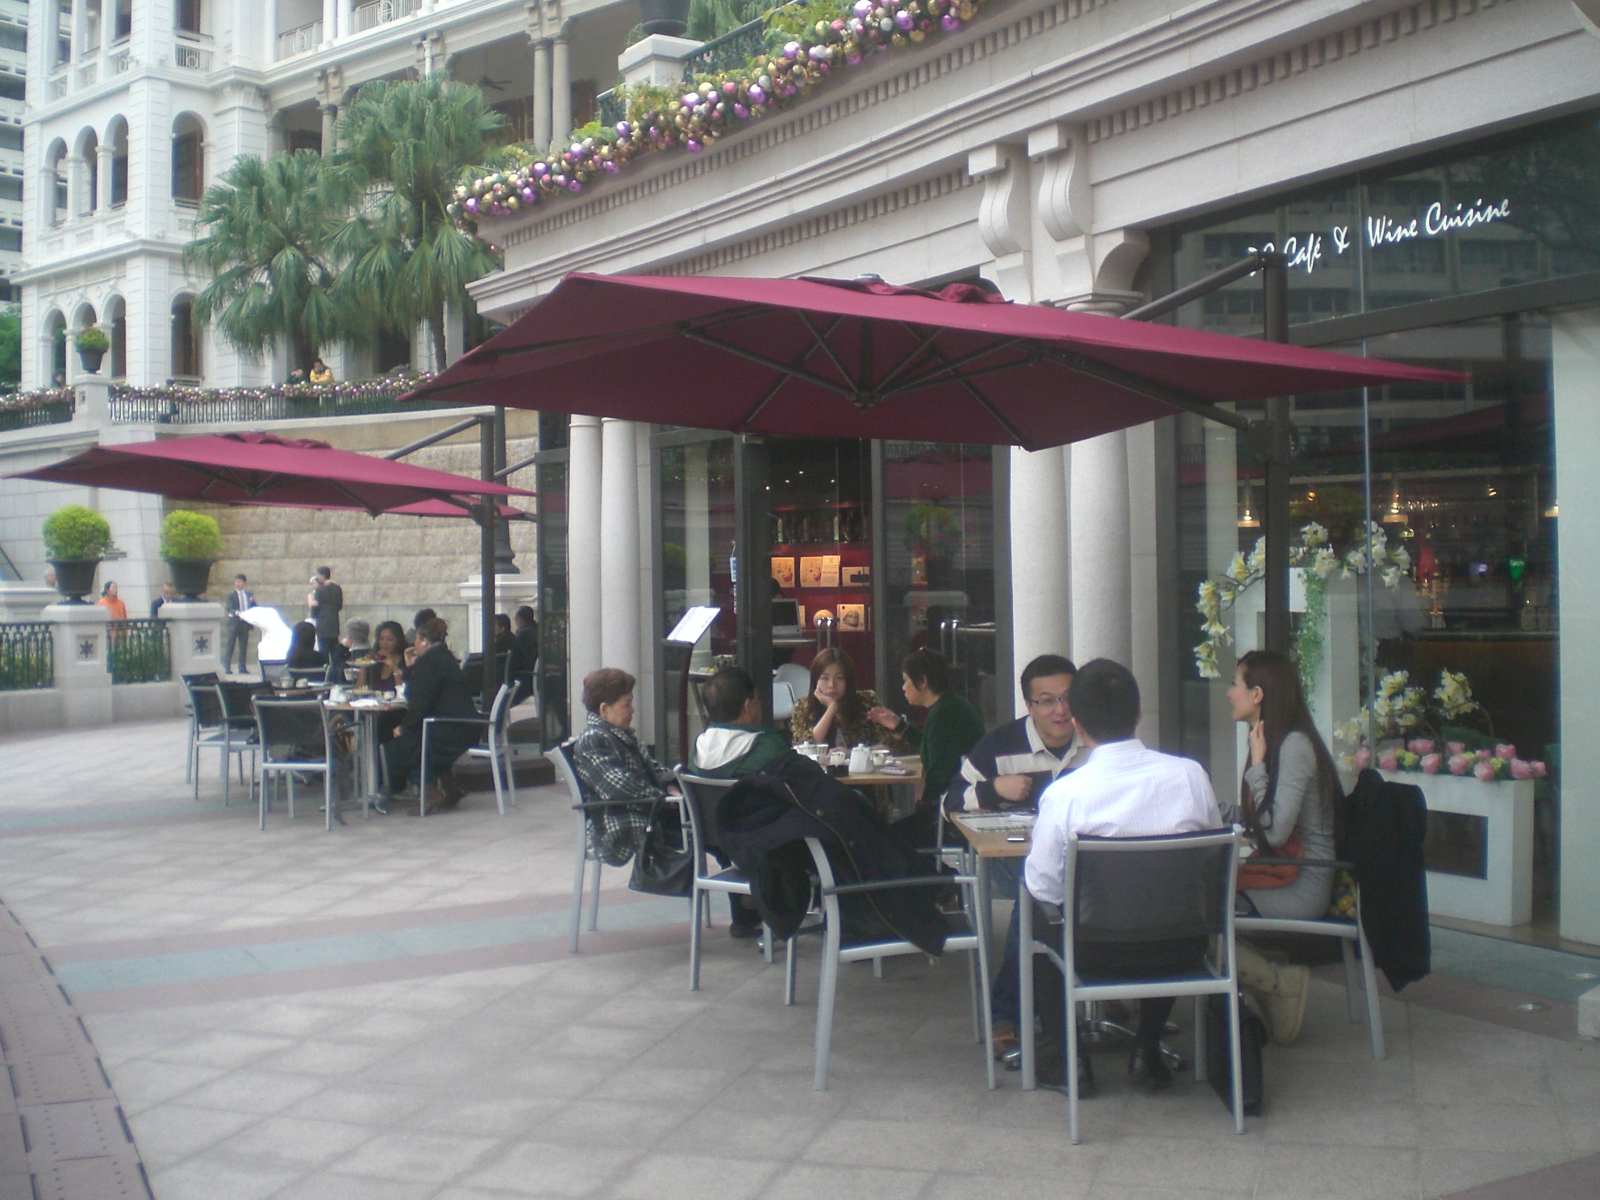 File:HK TST 1881 mall restaurant DG Cafe outdoor sidewalk umbrella ...